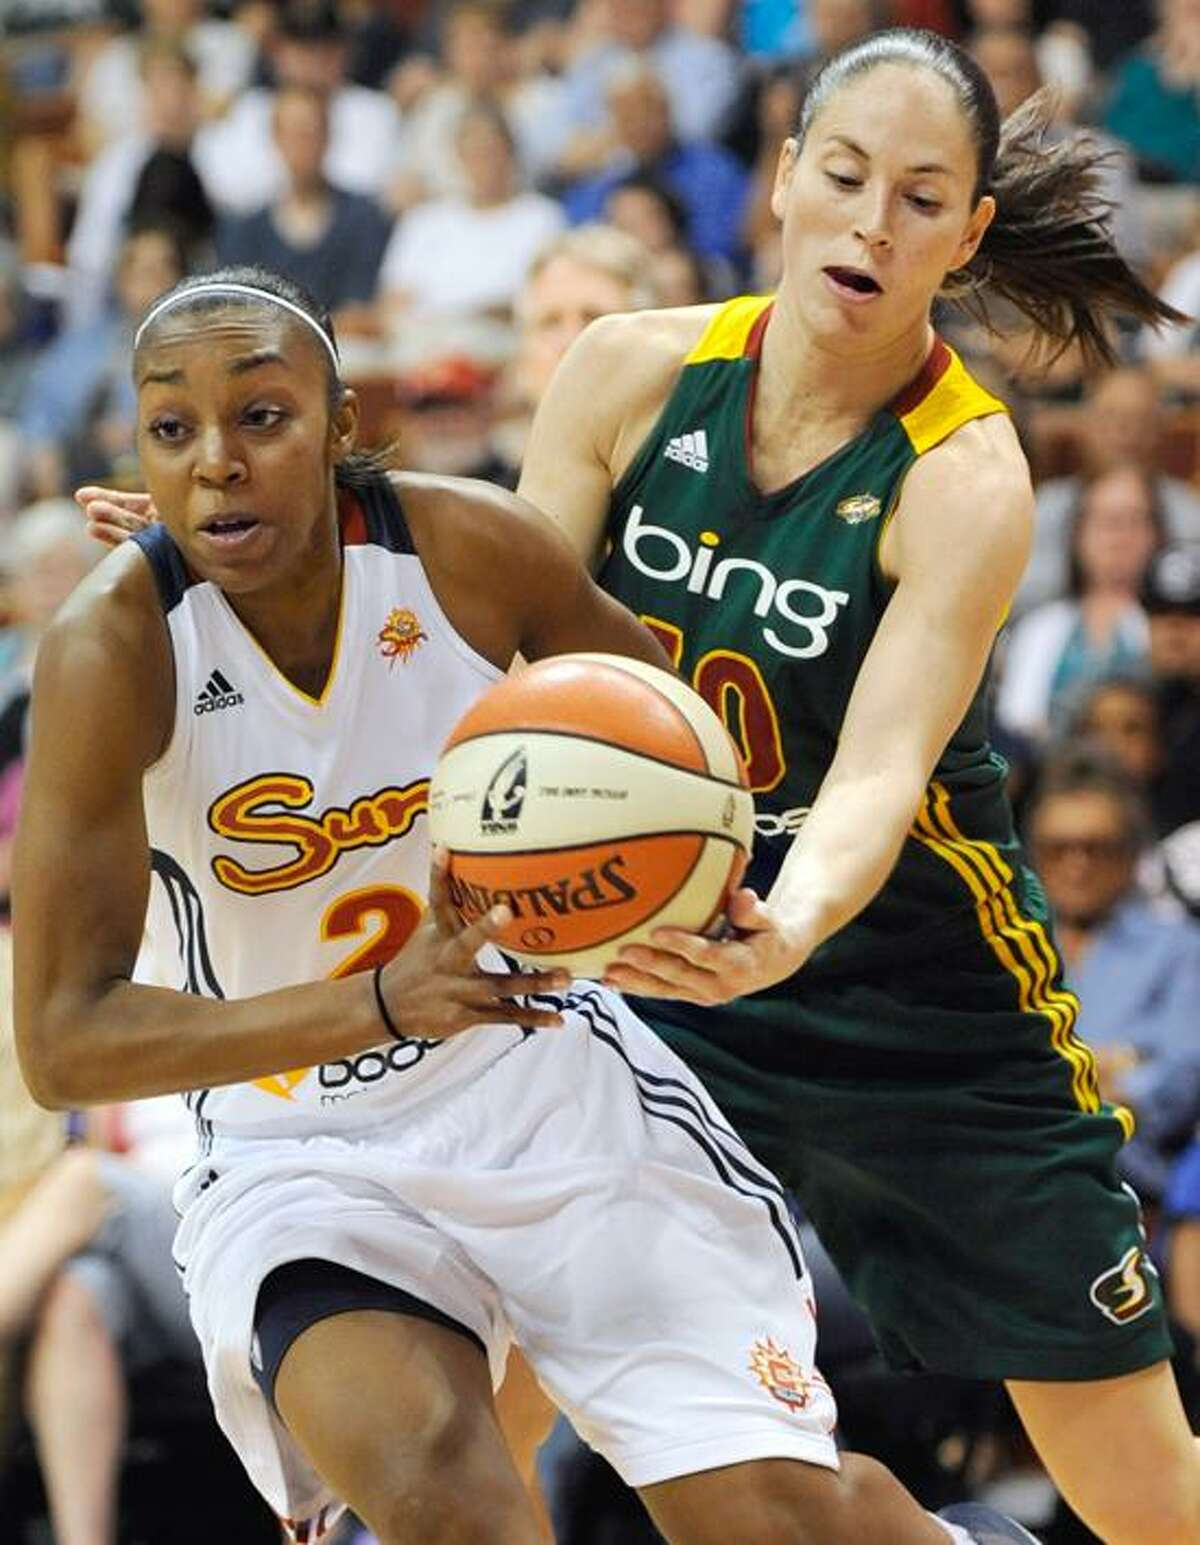 Connecticut Sun's Renee Montgomery, left, is pressured by Seattle Storm's Sue Bird in the first half of a WNBA basketball game in Uncasville, Conn., Sunday, July 1, 2012. (AP Photo/Jessica Hill)